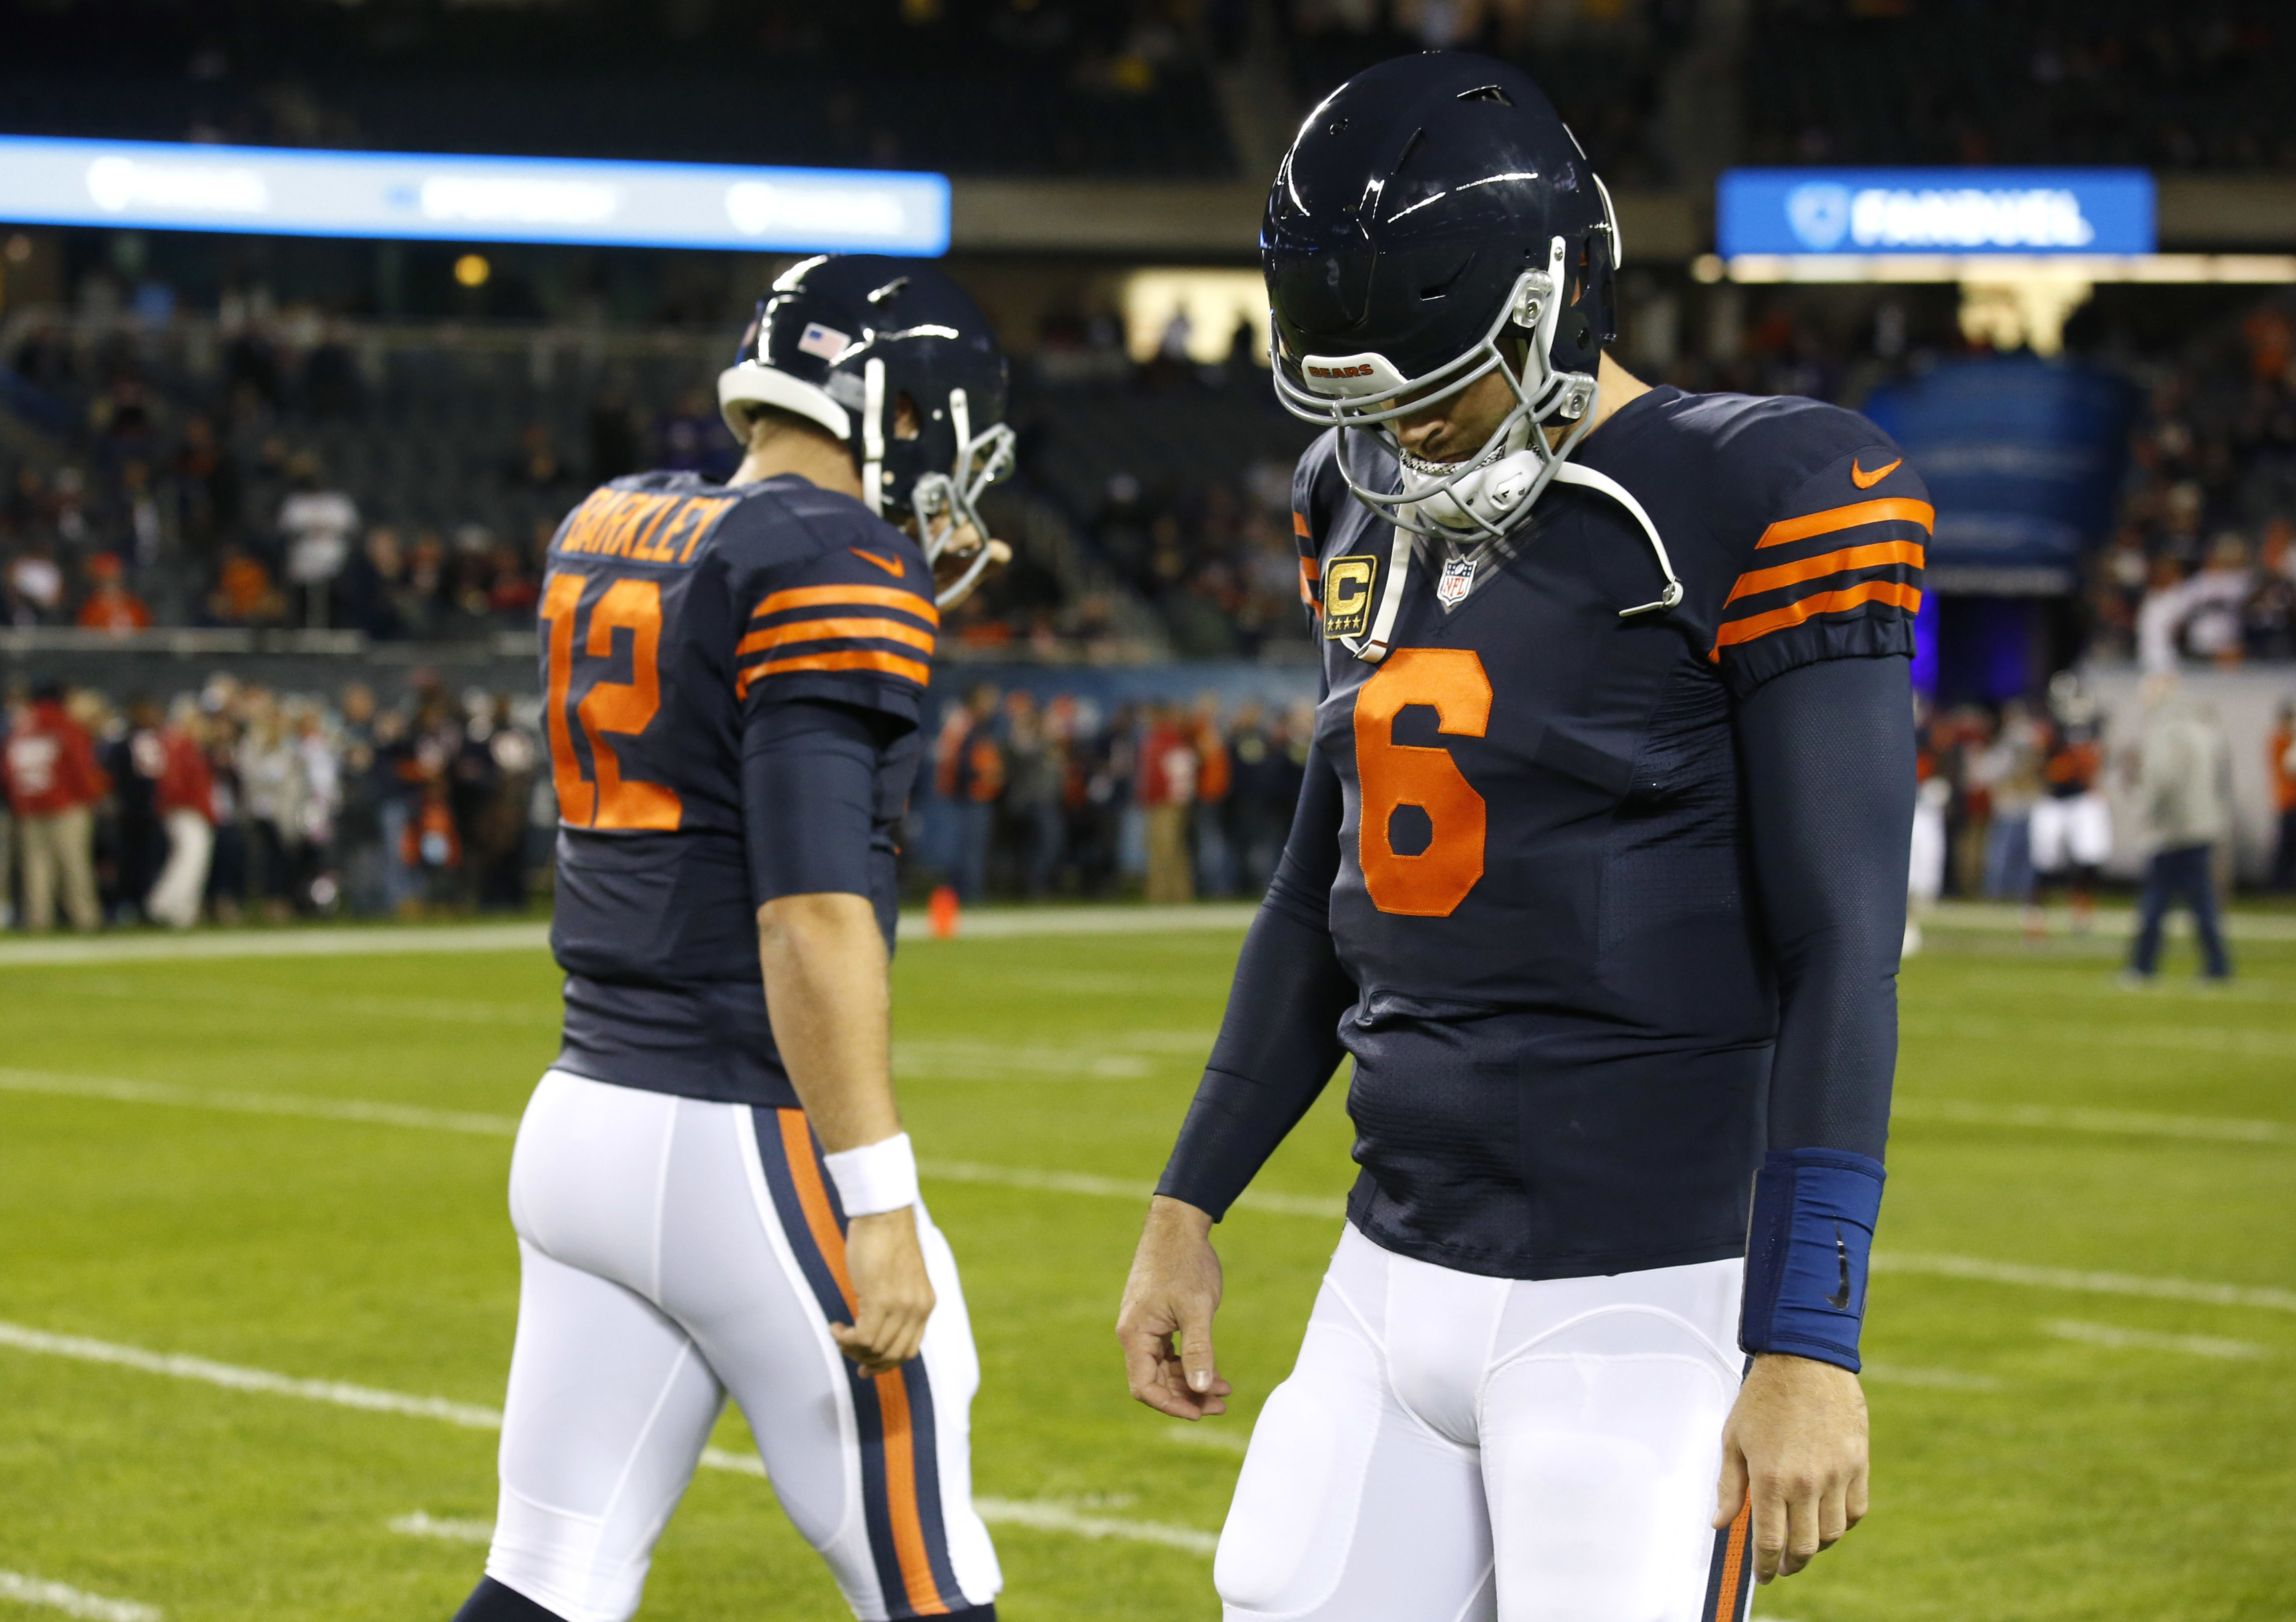 FILE - In this Oct. 31, 2016, file photo, Chicago Bears quarterbacks Matt Barkley (12) and Jay Cutler (6) walk on the field during warmups before an NFL football game against the Minnesota Vikings, in Chicago. The Titans (5-6) likely will be facing Matt B